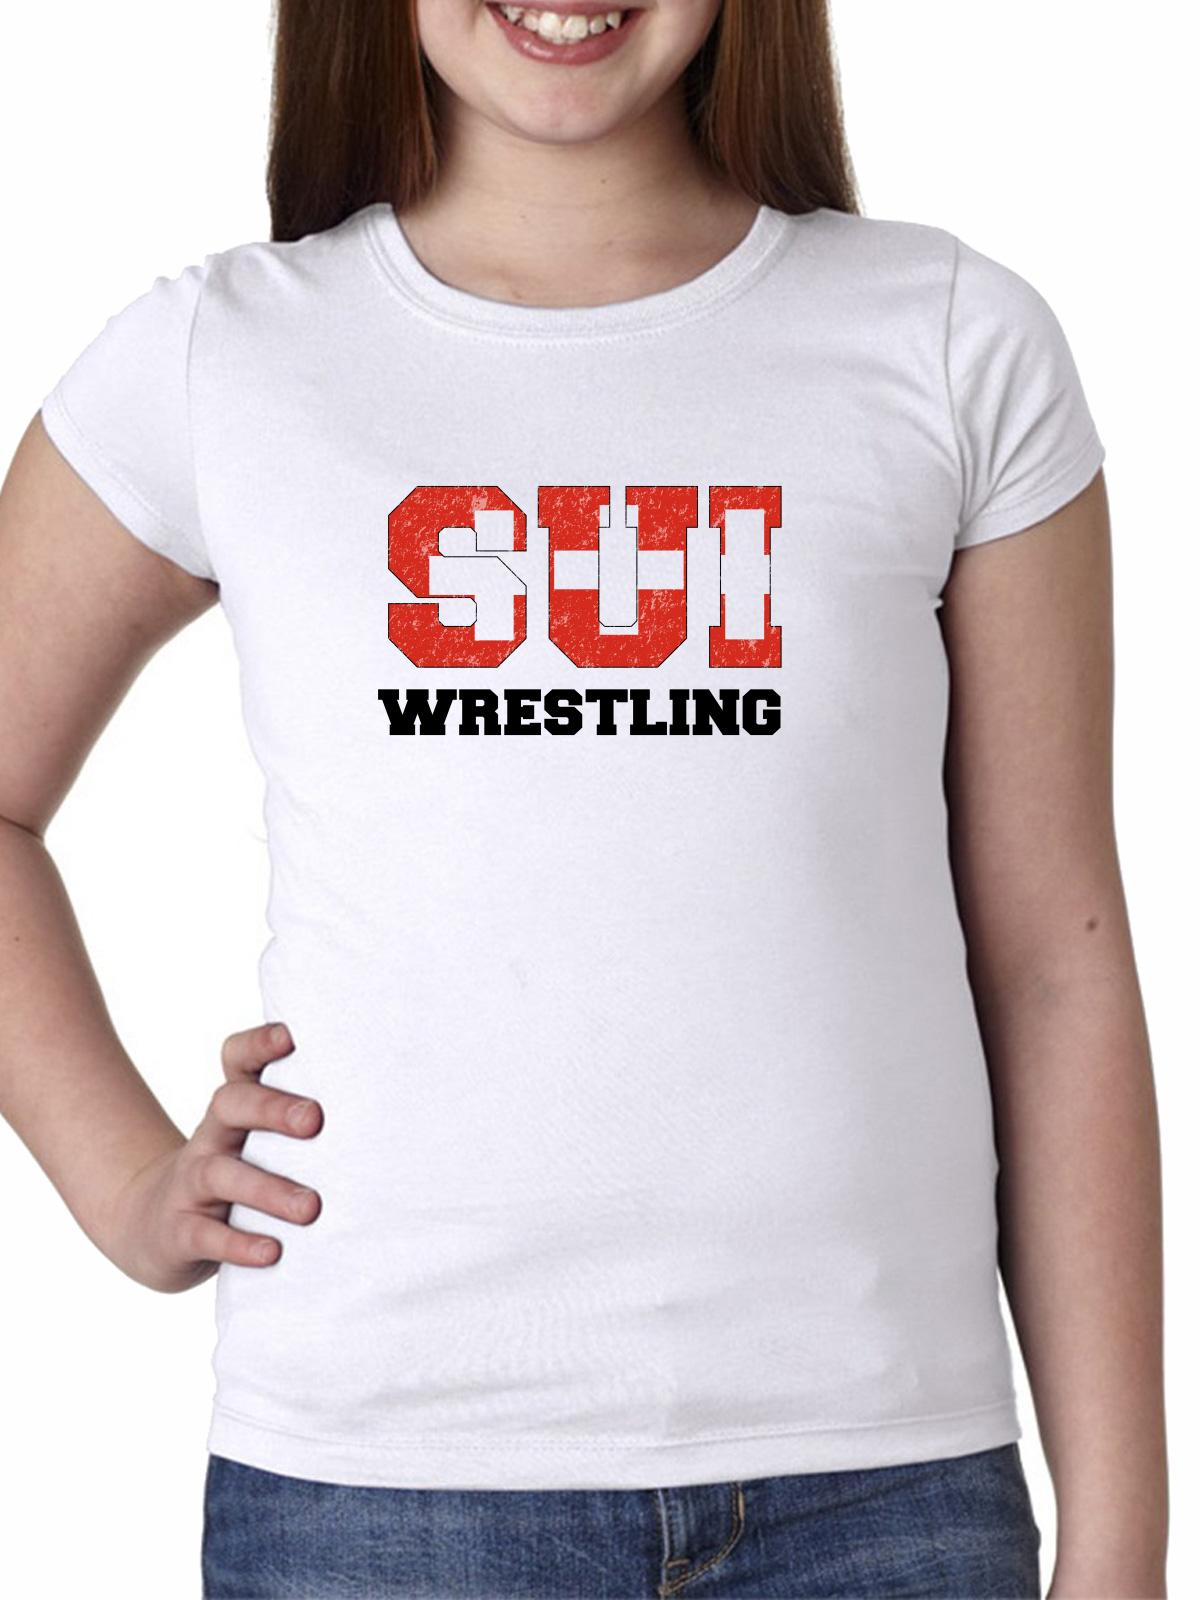 Switzerland Wrestling Olympic Games Rio Flag Girl's Cotton Youth T-Shirt by Hollywood Thread